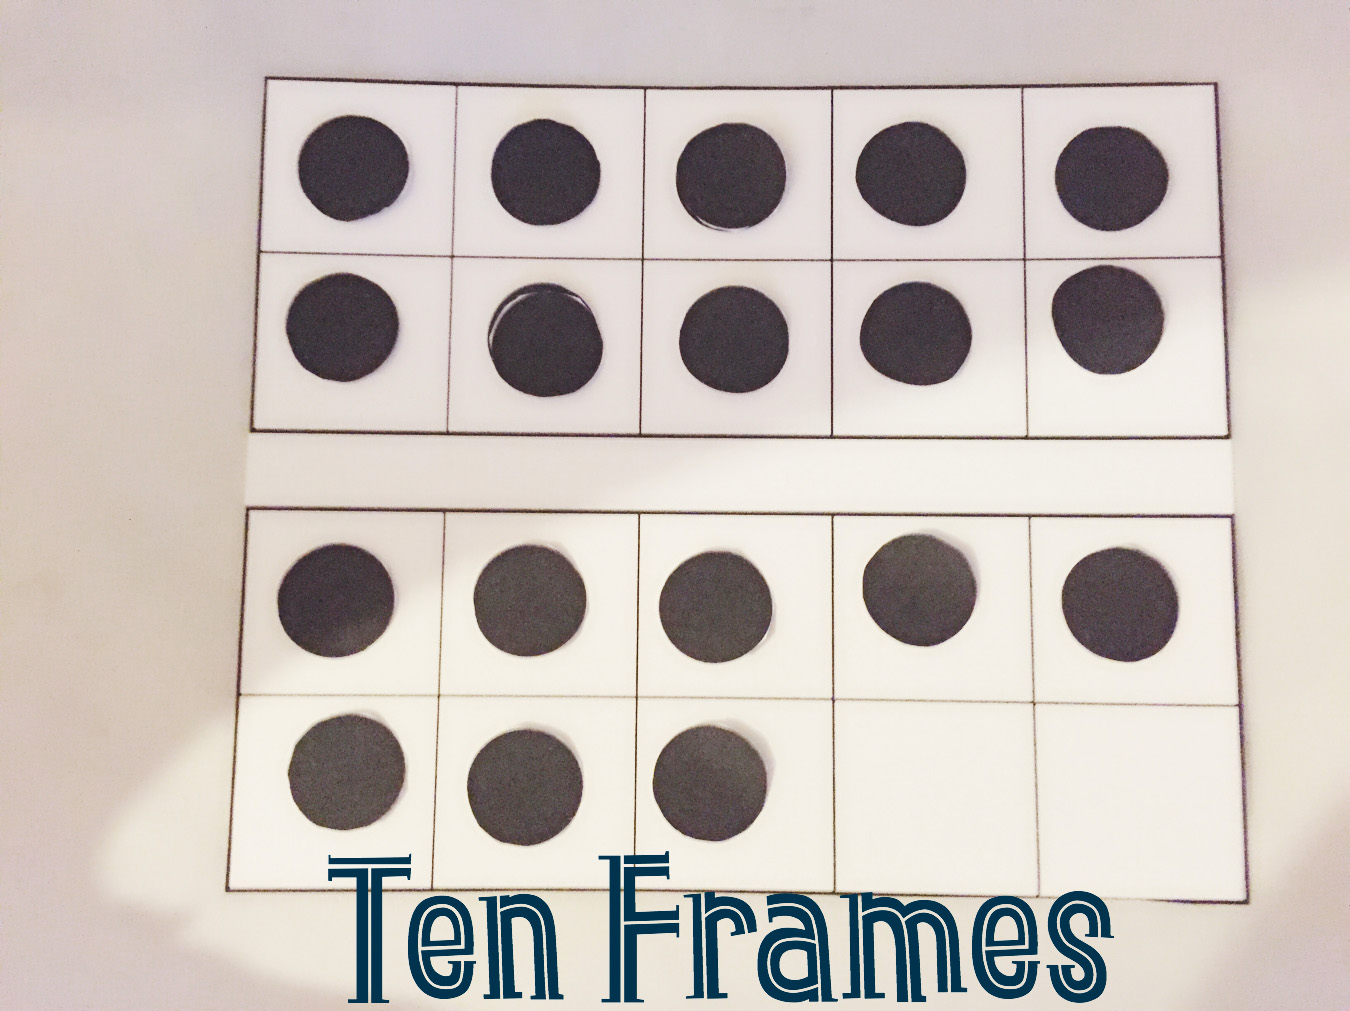 Ten frames with black paper dots help students add and subtract